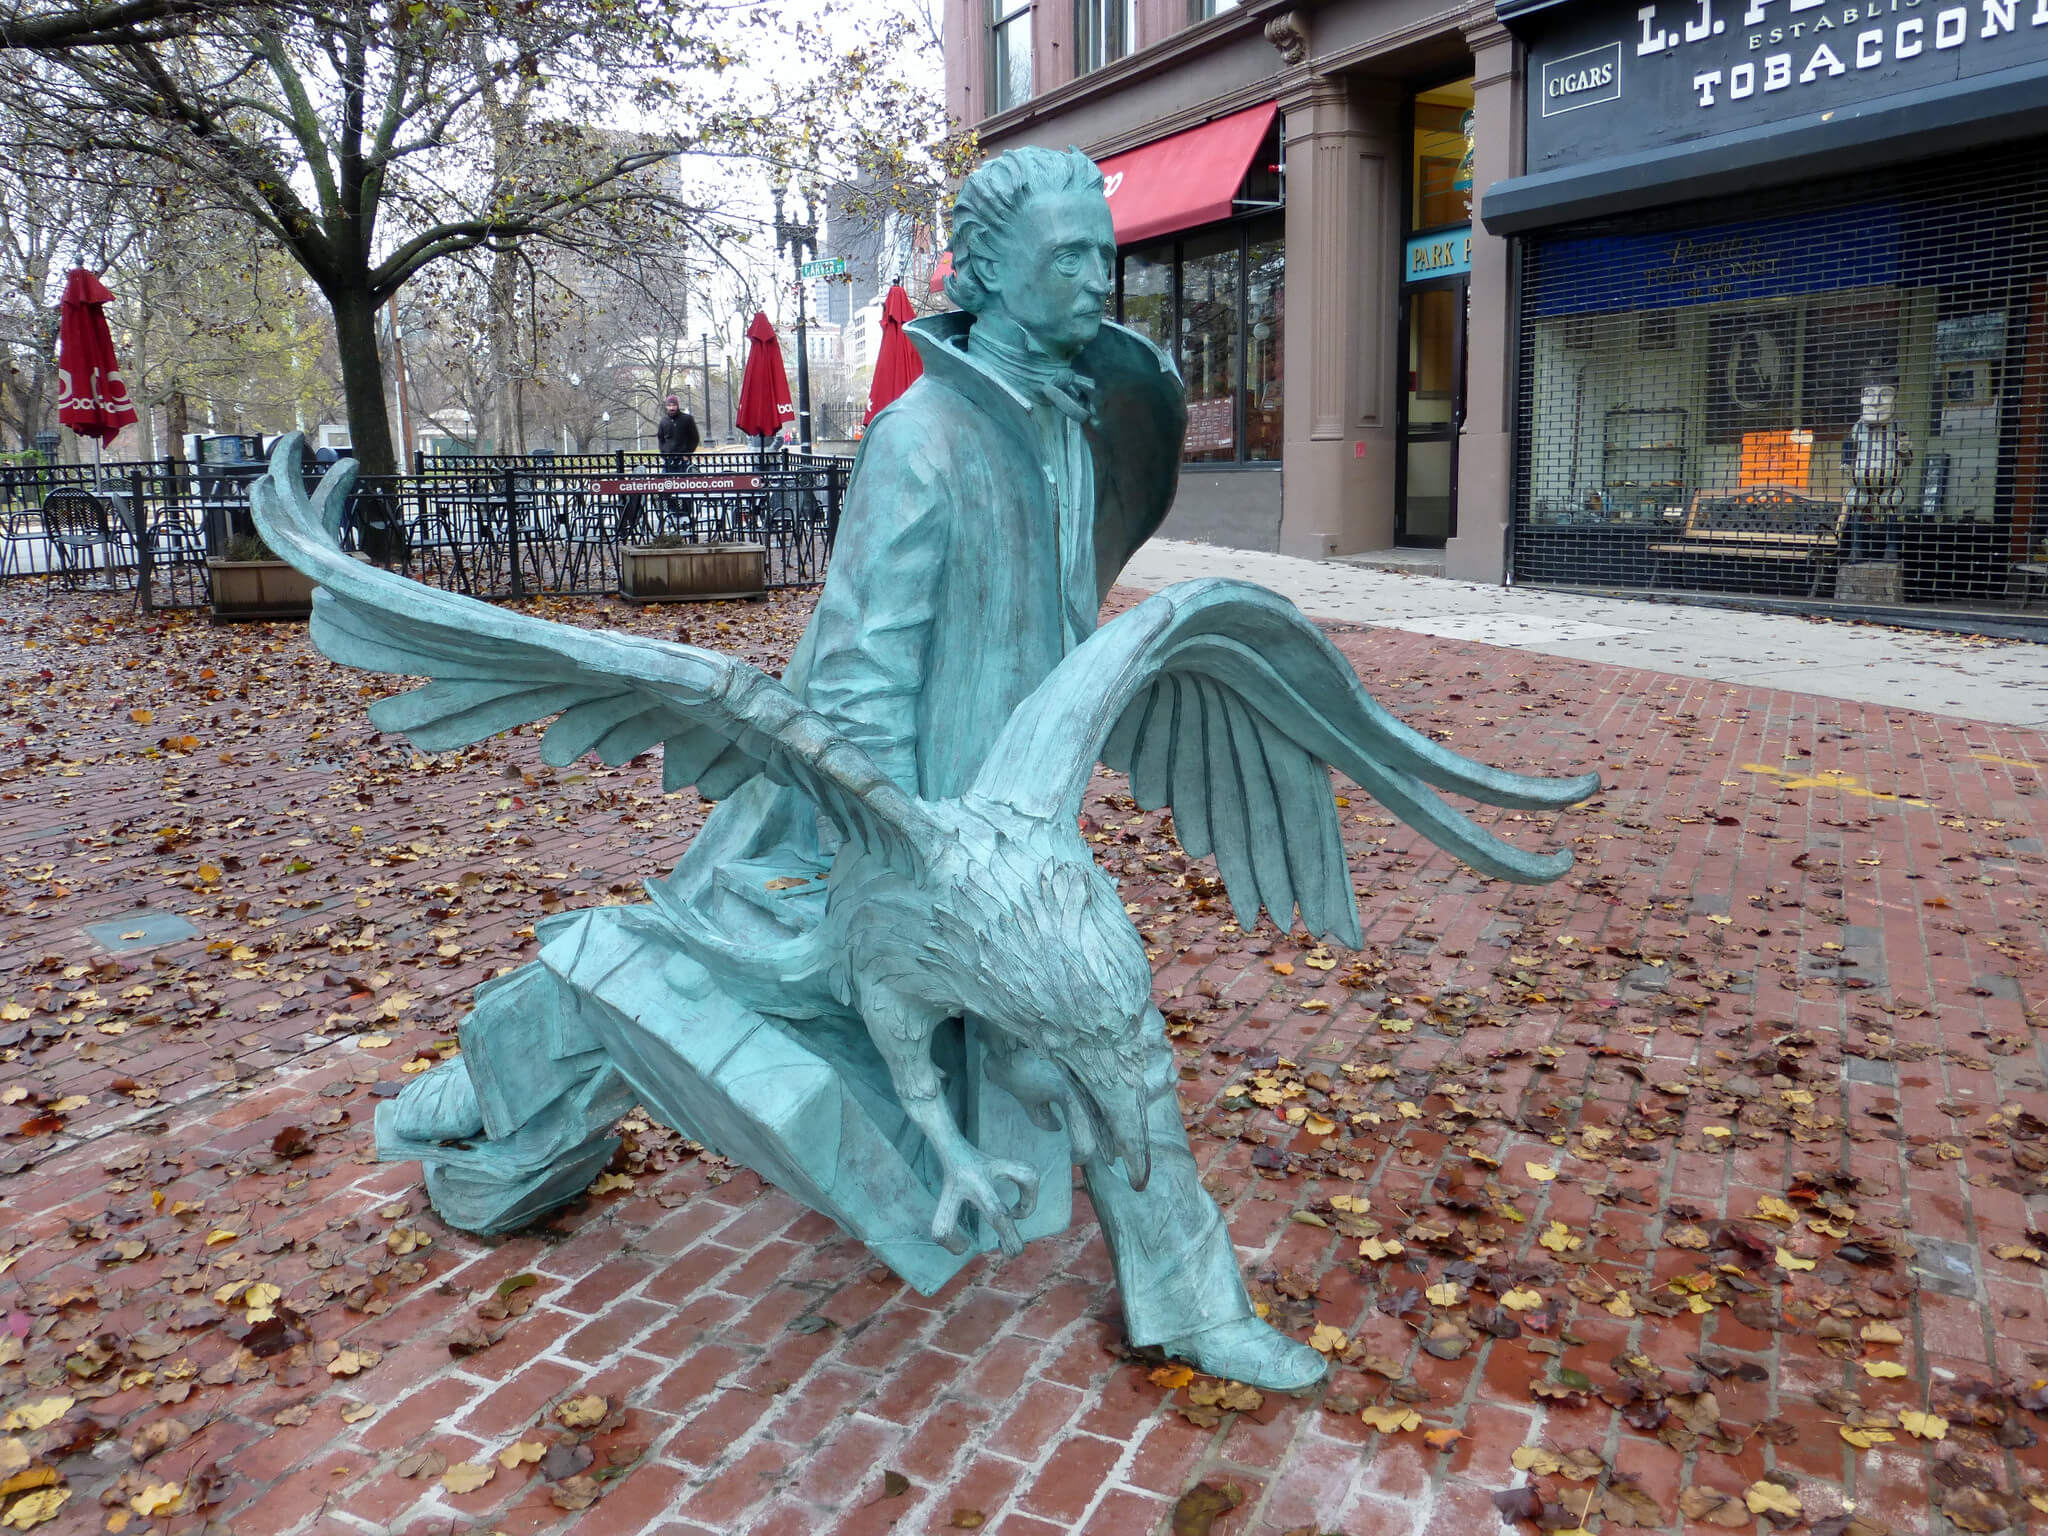 Edgar Allan Poe Square Things to do in Boston